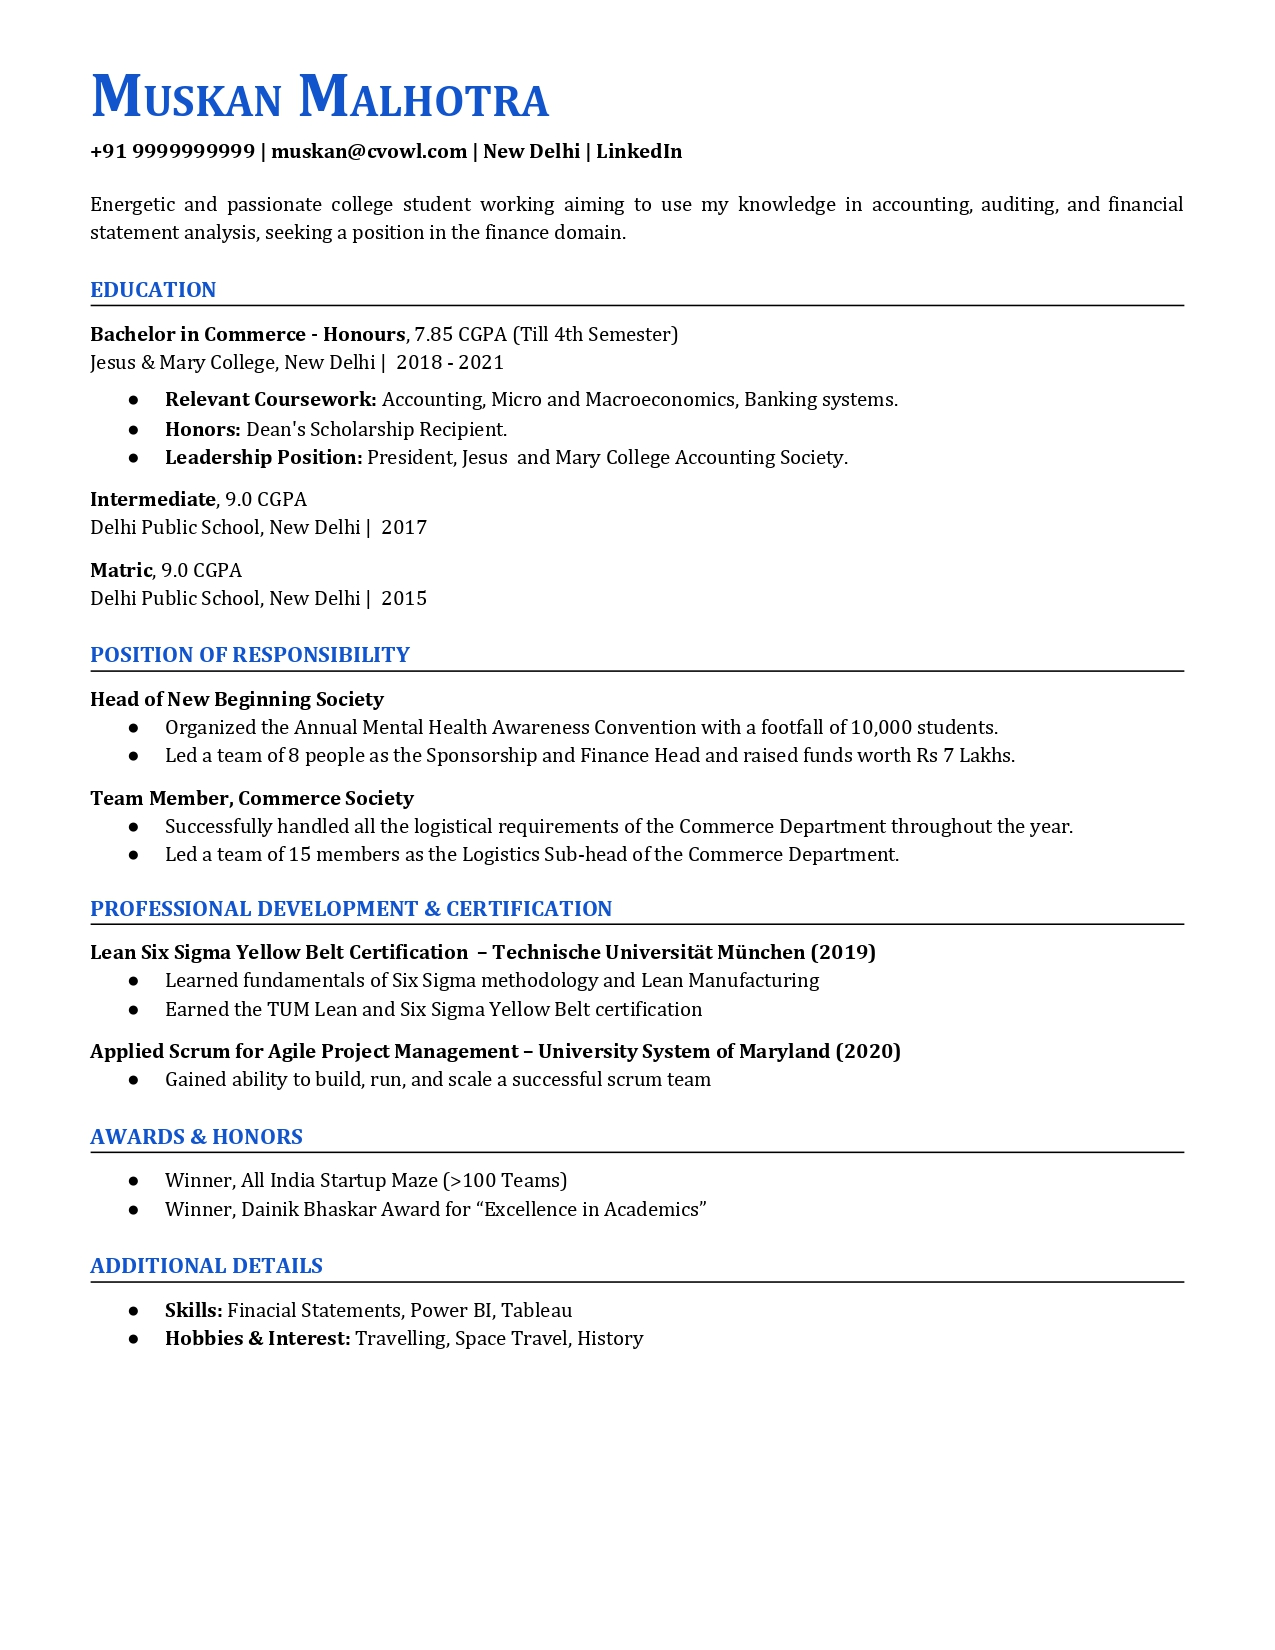 intern resume sample college internship script ucsd template epic systems analyst Resume College Internship Resume